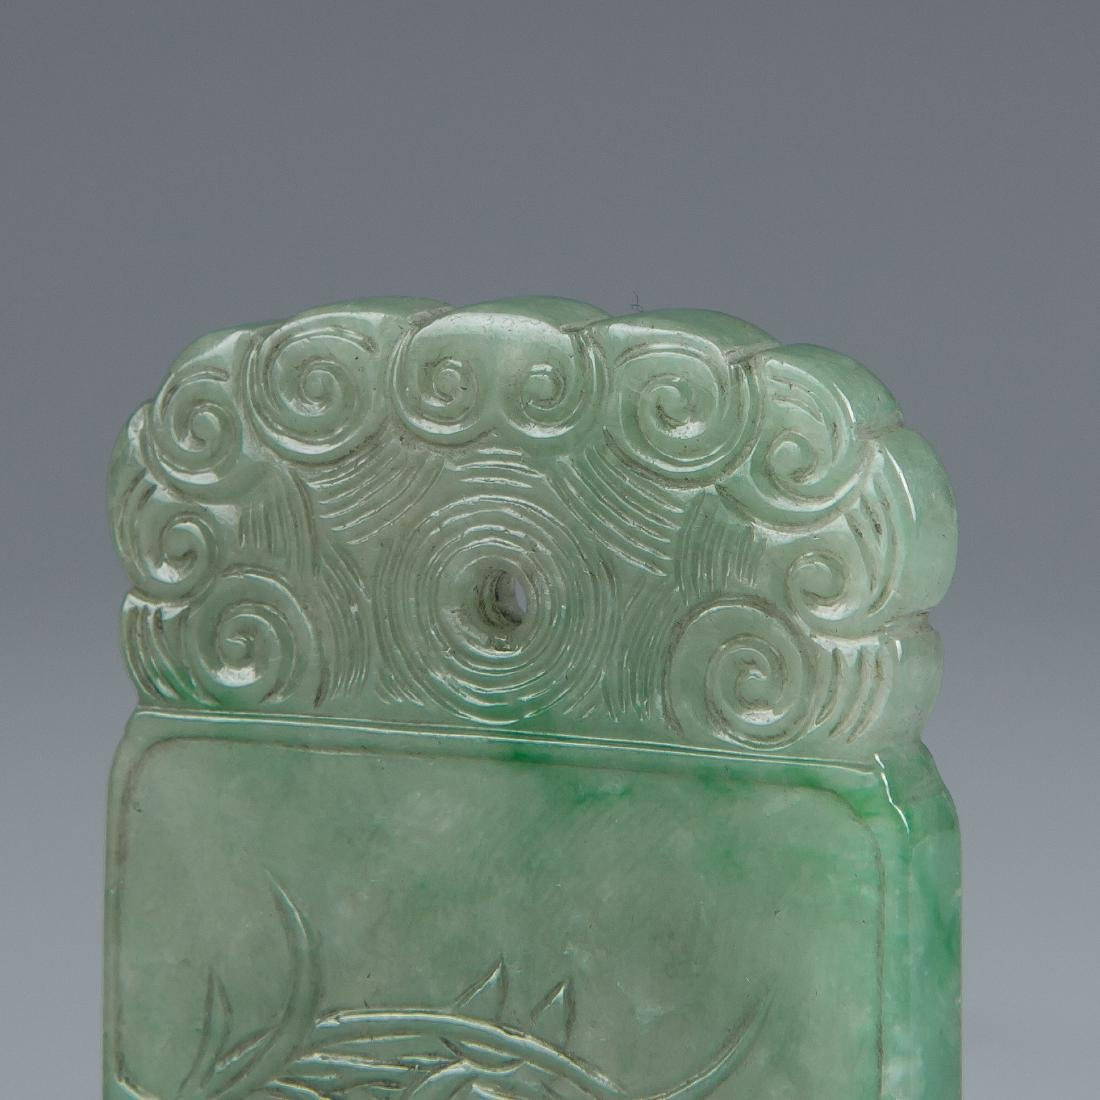 Green Jadeite Pendant With Chinese Characters - 4